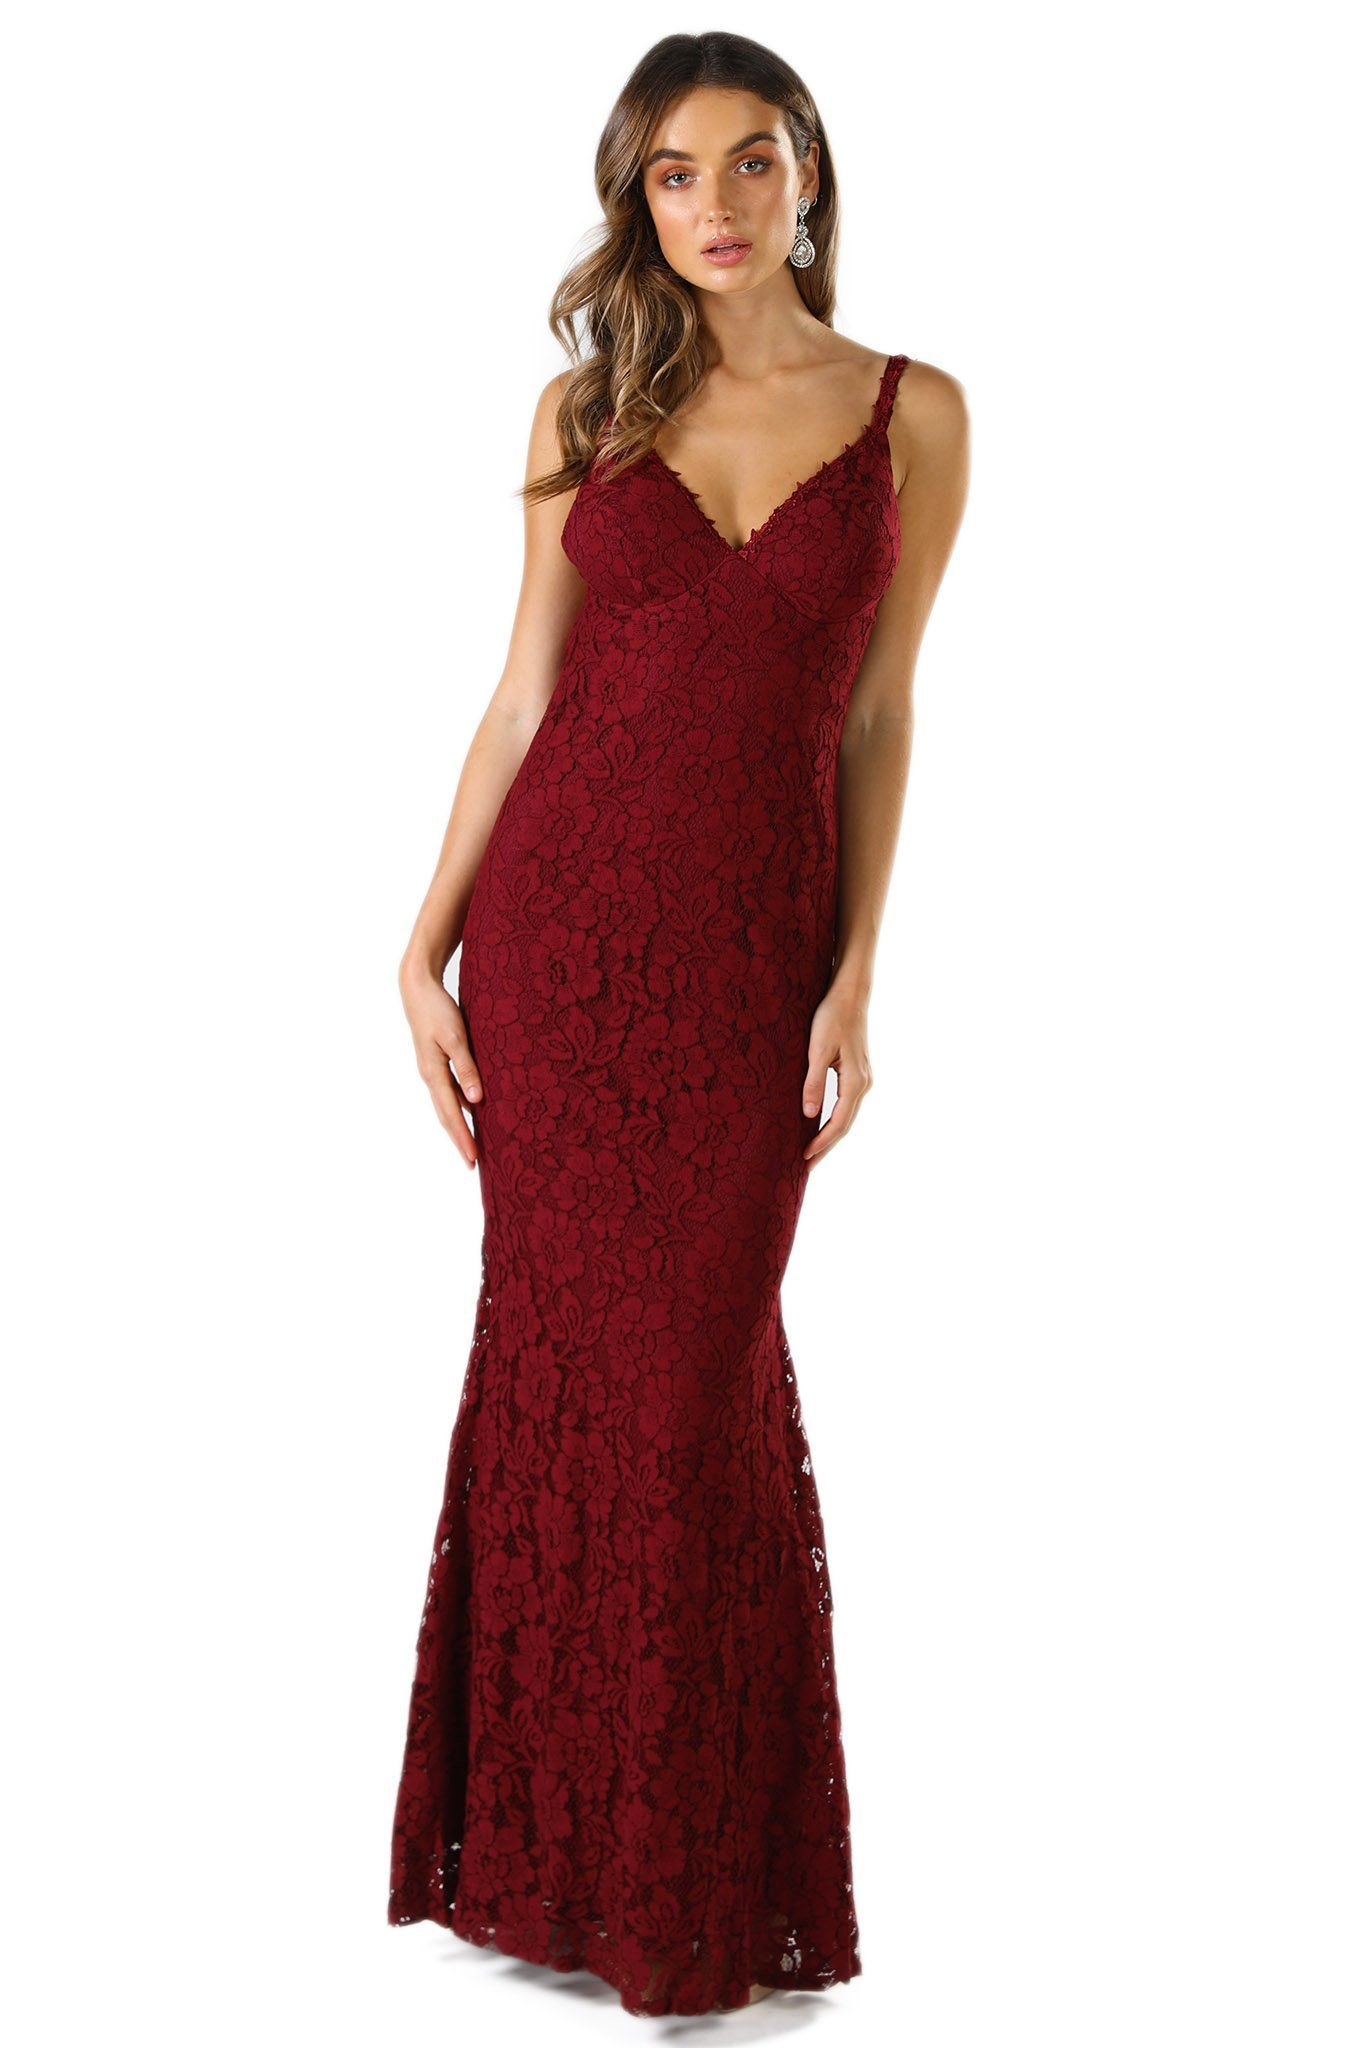 Wine red sleeveless fitted lace maxi dress with V neck, shoulder straps and low cut V shaped back design